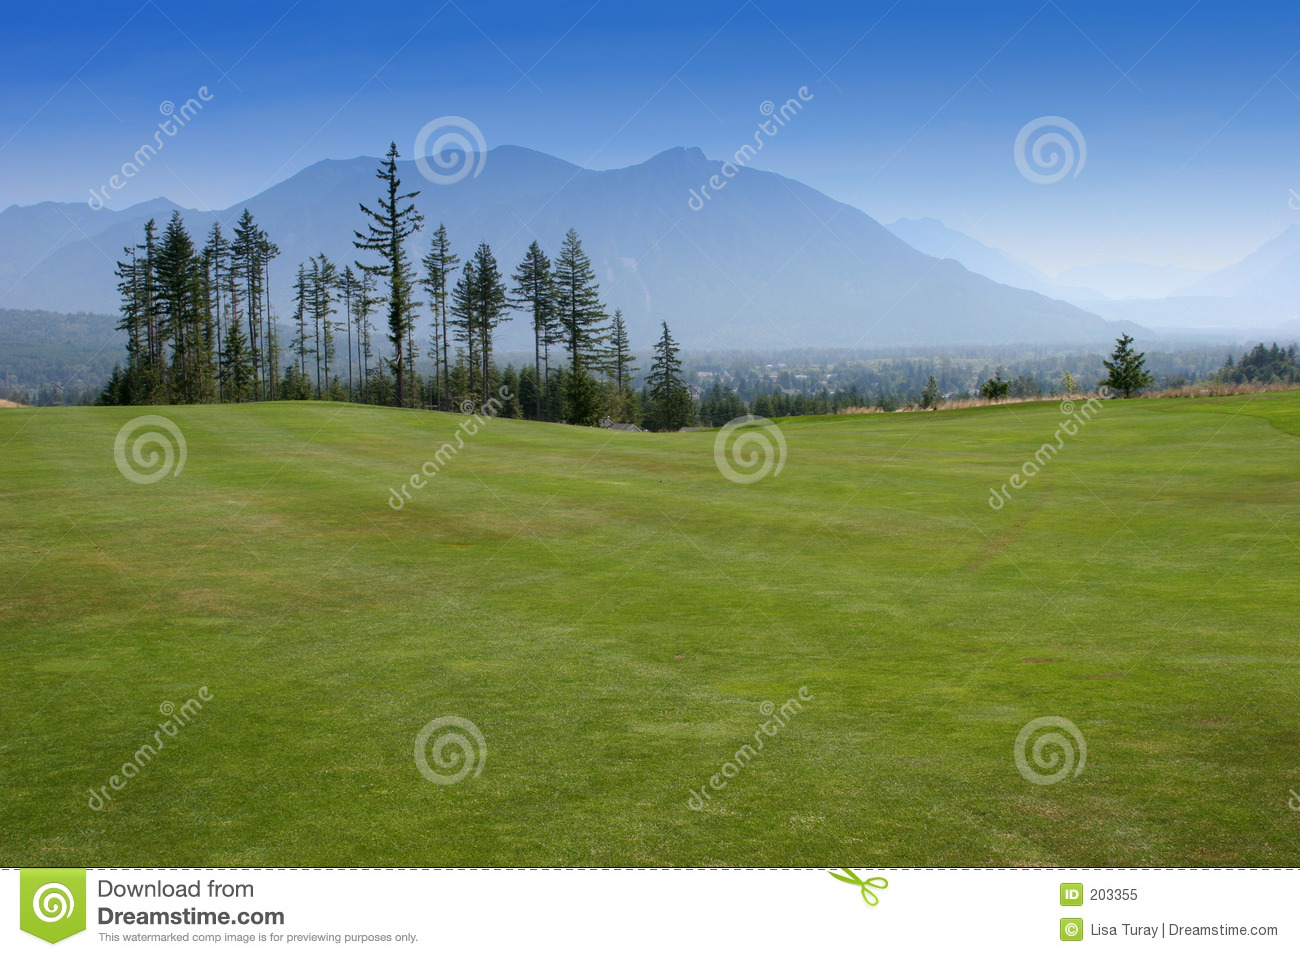 12 Free Stock Photo Golf Course Images